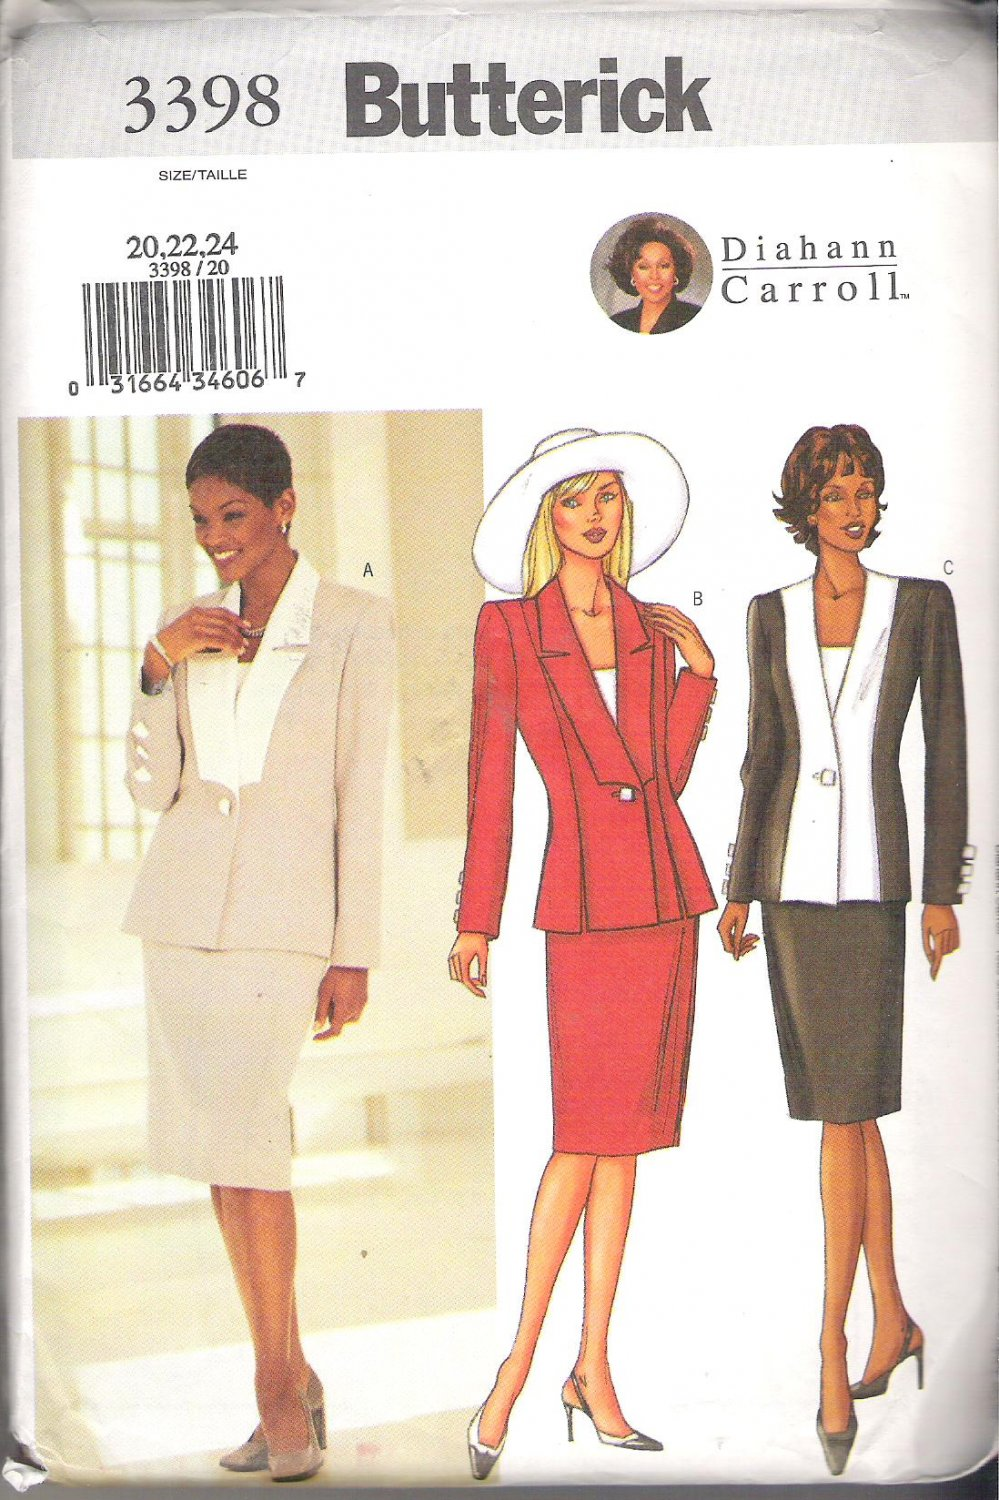 Butterick 3398 (2002) Diahann Carroll Plus Size Misses/Petite Pattern Jacket Top Skirt  20-22  Uncut